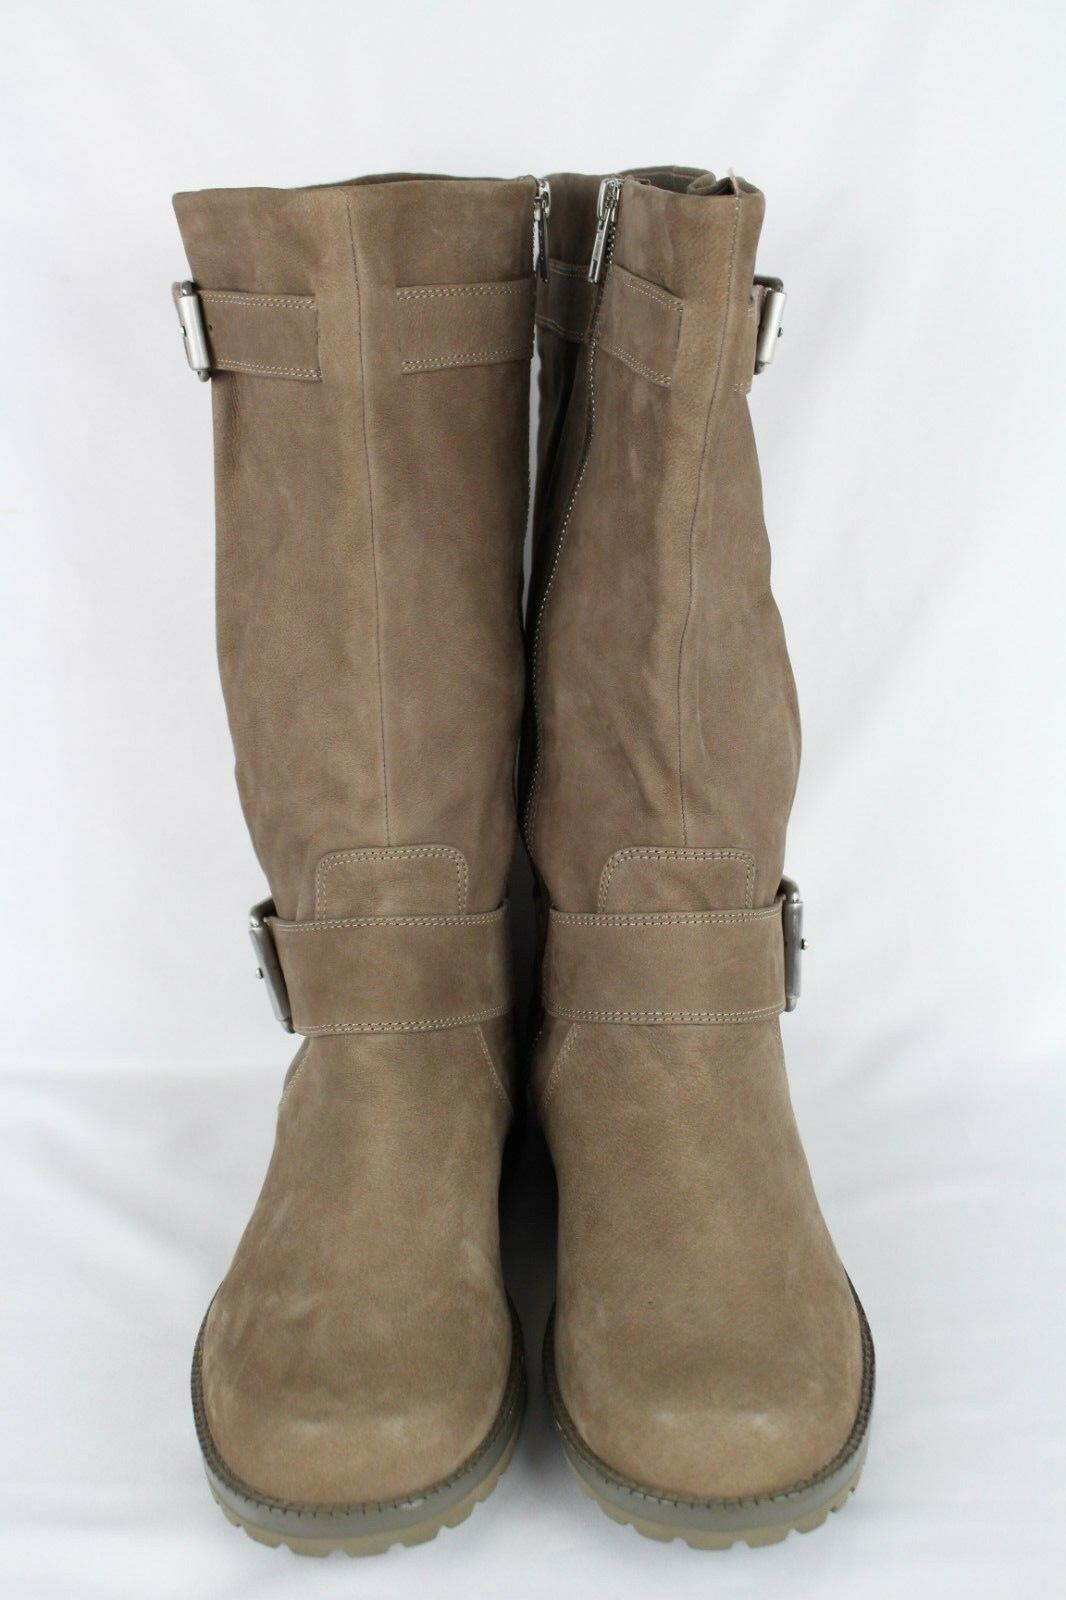 Gentle Souls Women's Buckled Up Mid Mid Mid Calf Boots 9.5m Mushroom Super Soft Leather 6c19e4